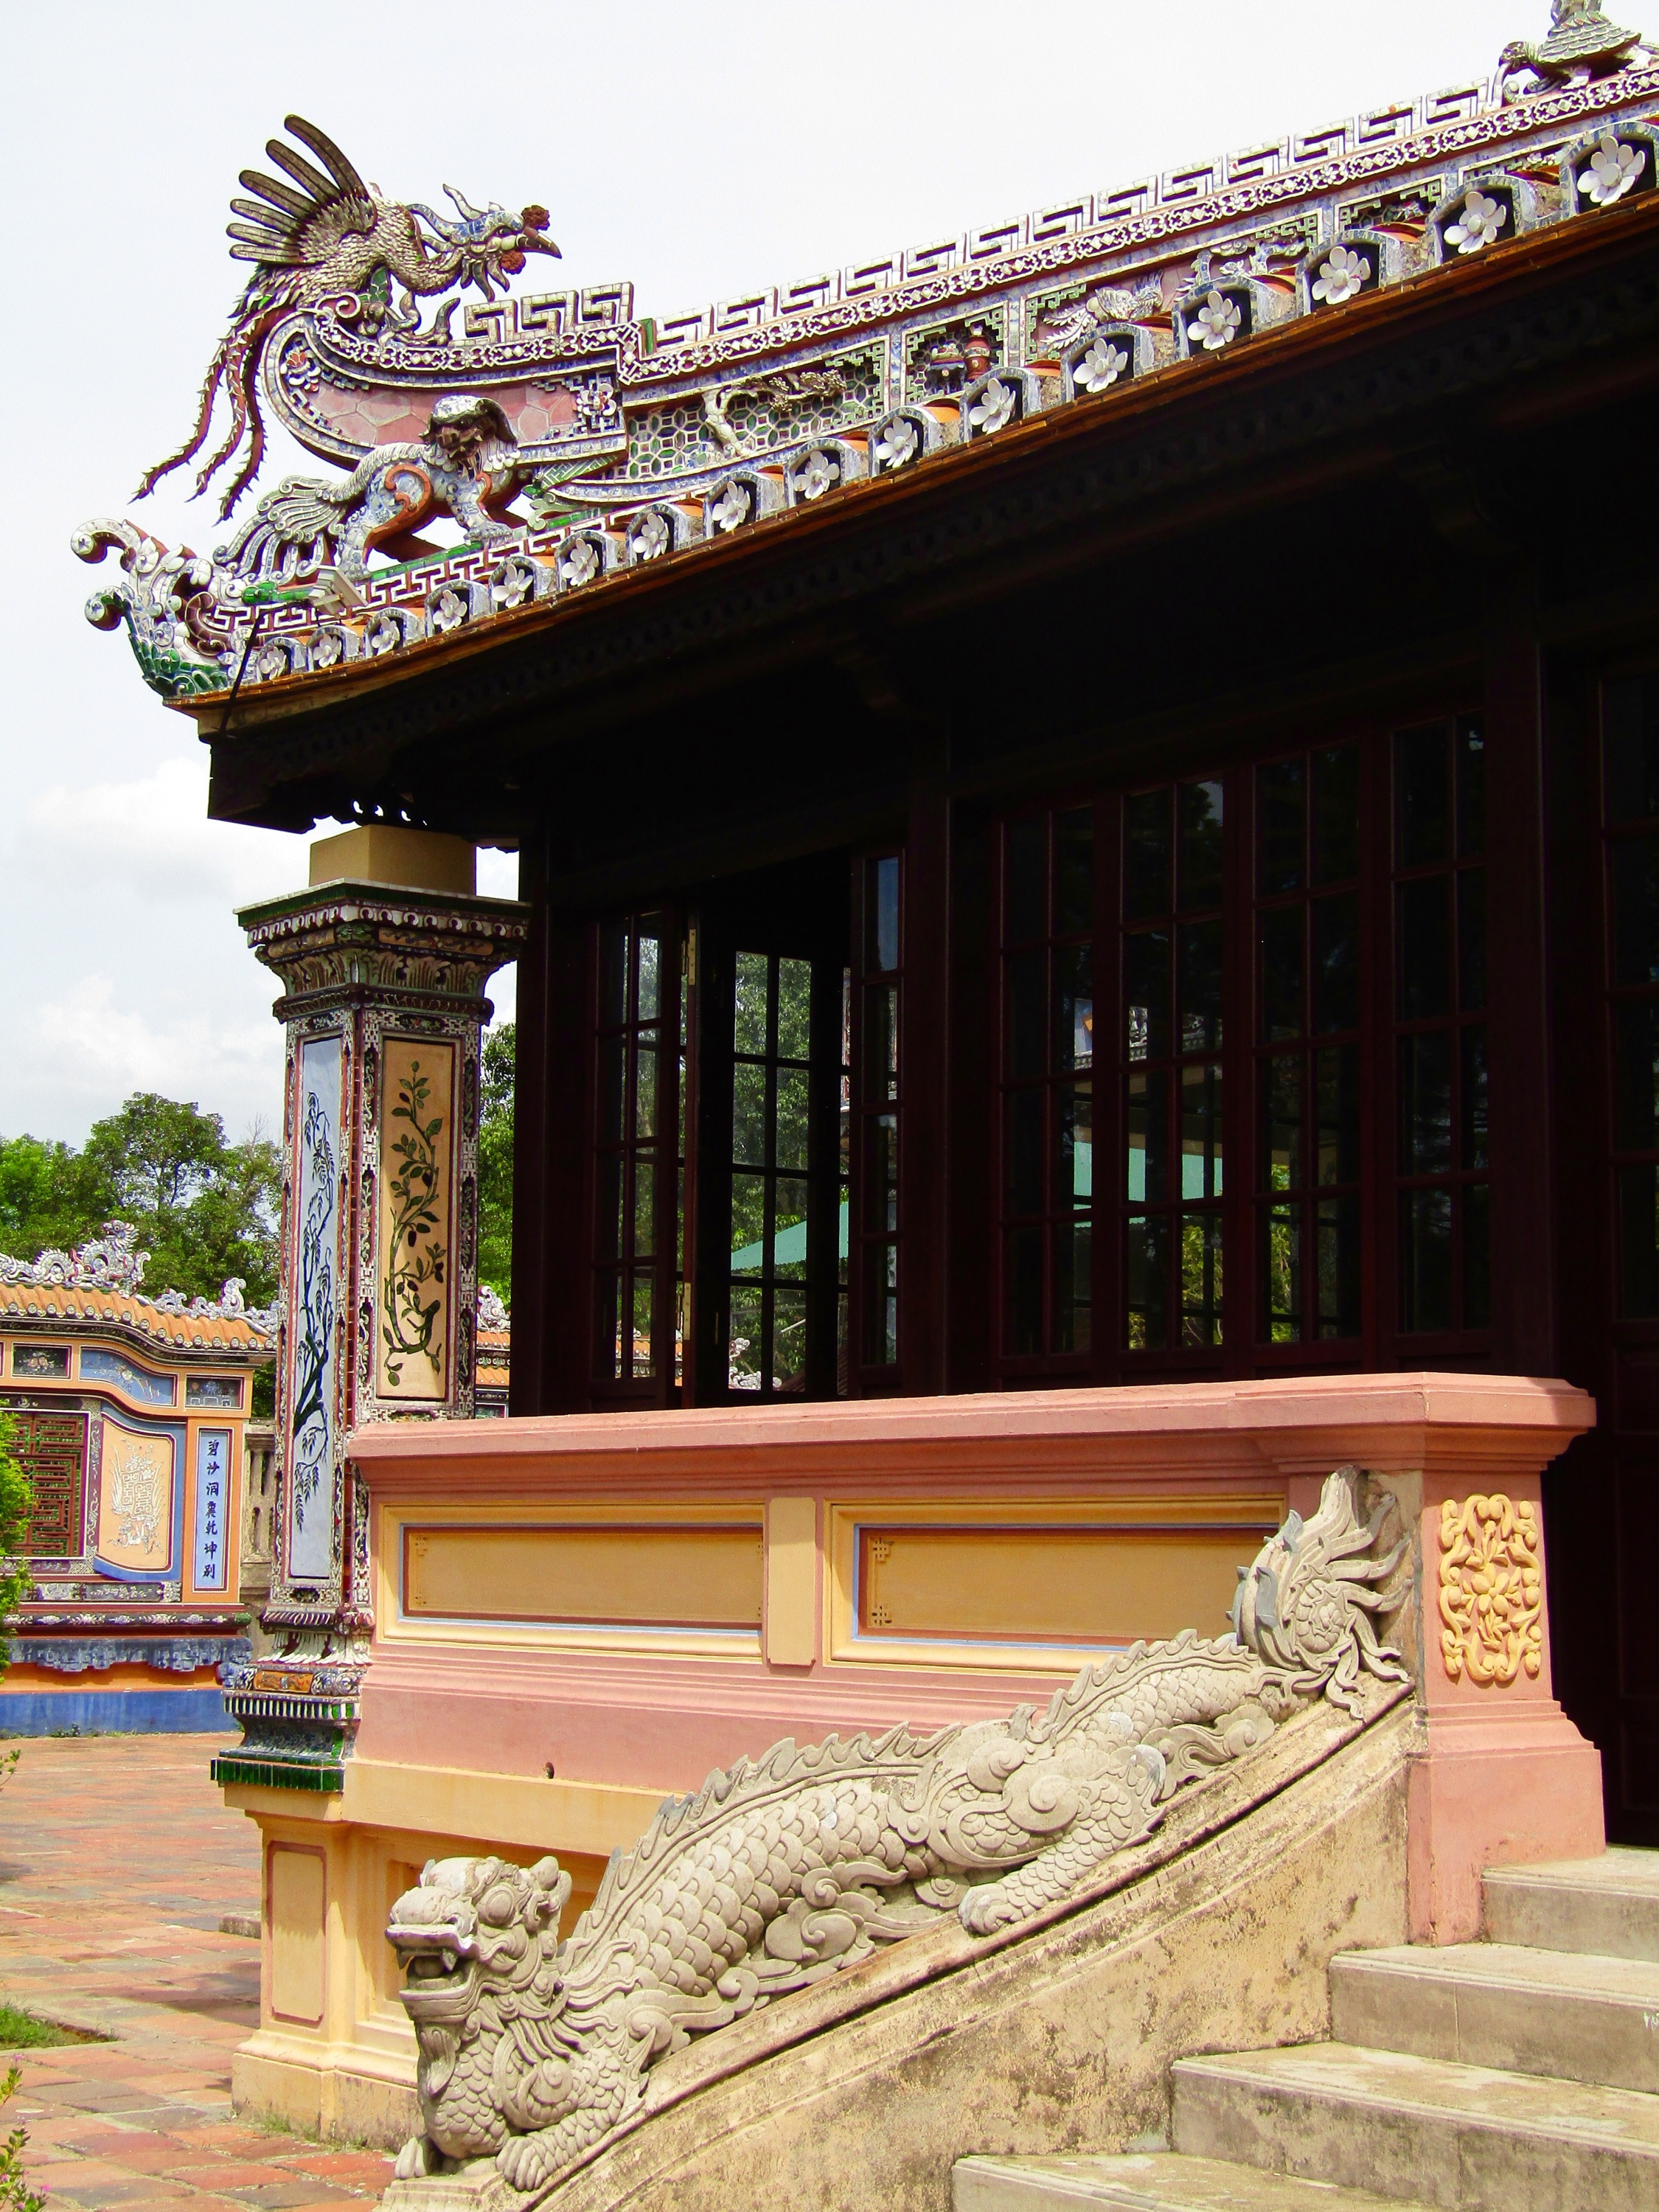 A building inside Hue's Imperial Palace. The palace was heavily damaged during the Tet Offensive in the Vietnam War. Of the 160 buildings in the complex, only 10 survived the battle. The remaining buildings were added to the UNESCO World Heritage List in 1993 and restoration work continues to this day.